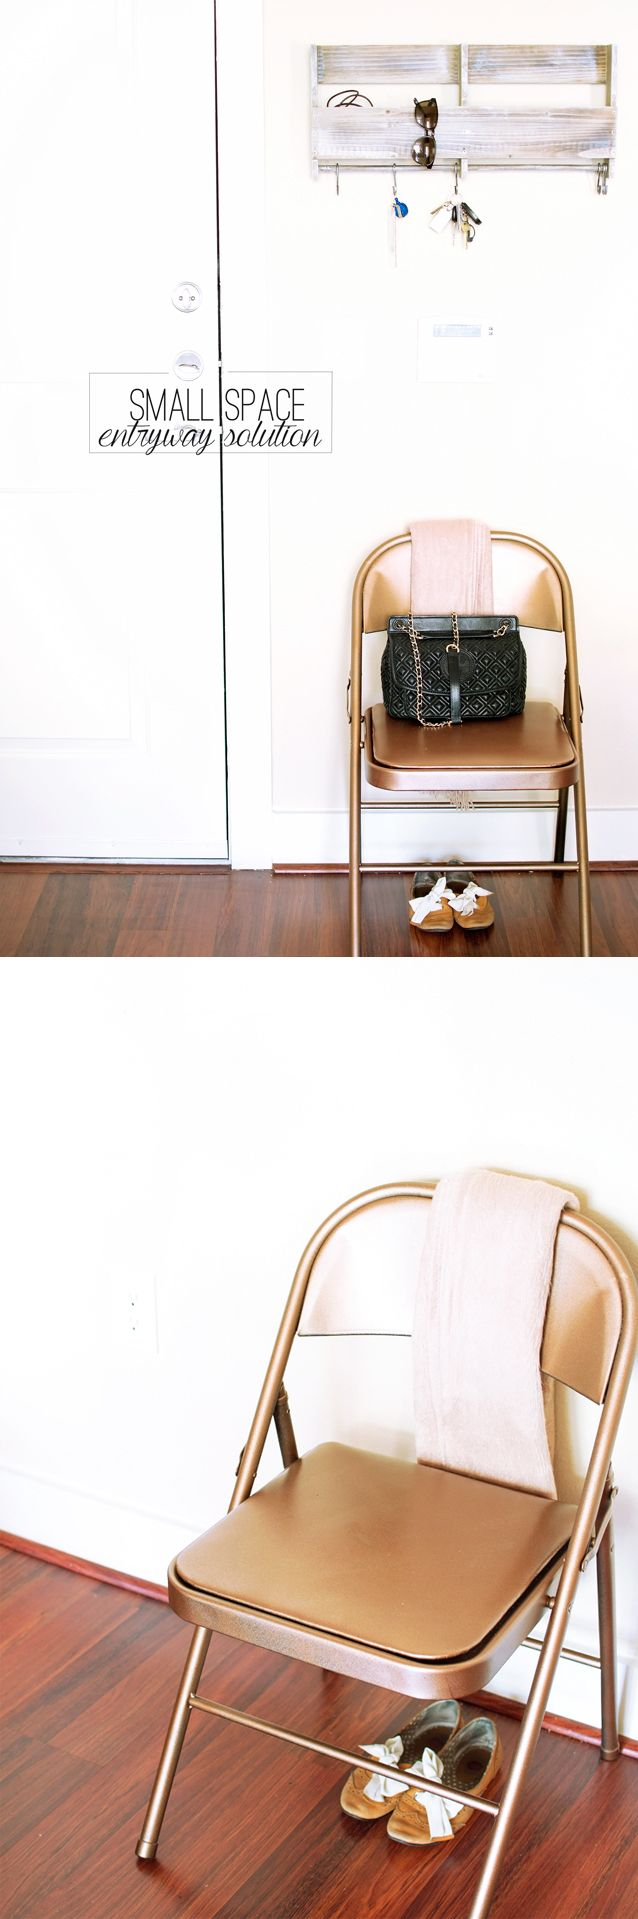 The simplest small space entryway solution minimalist design for an airy entryway pin now to - Entryway decorating ideas for small spaces minimalist ...